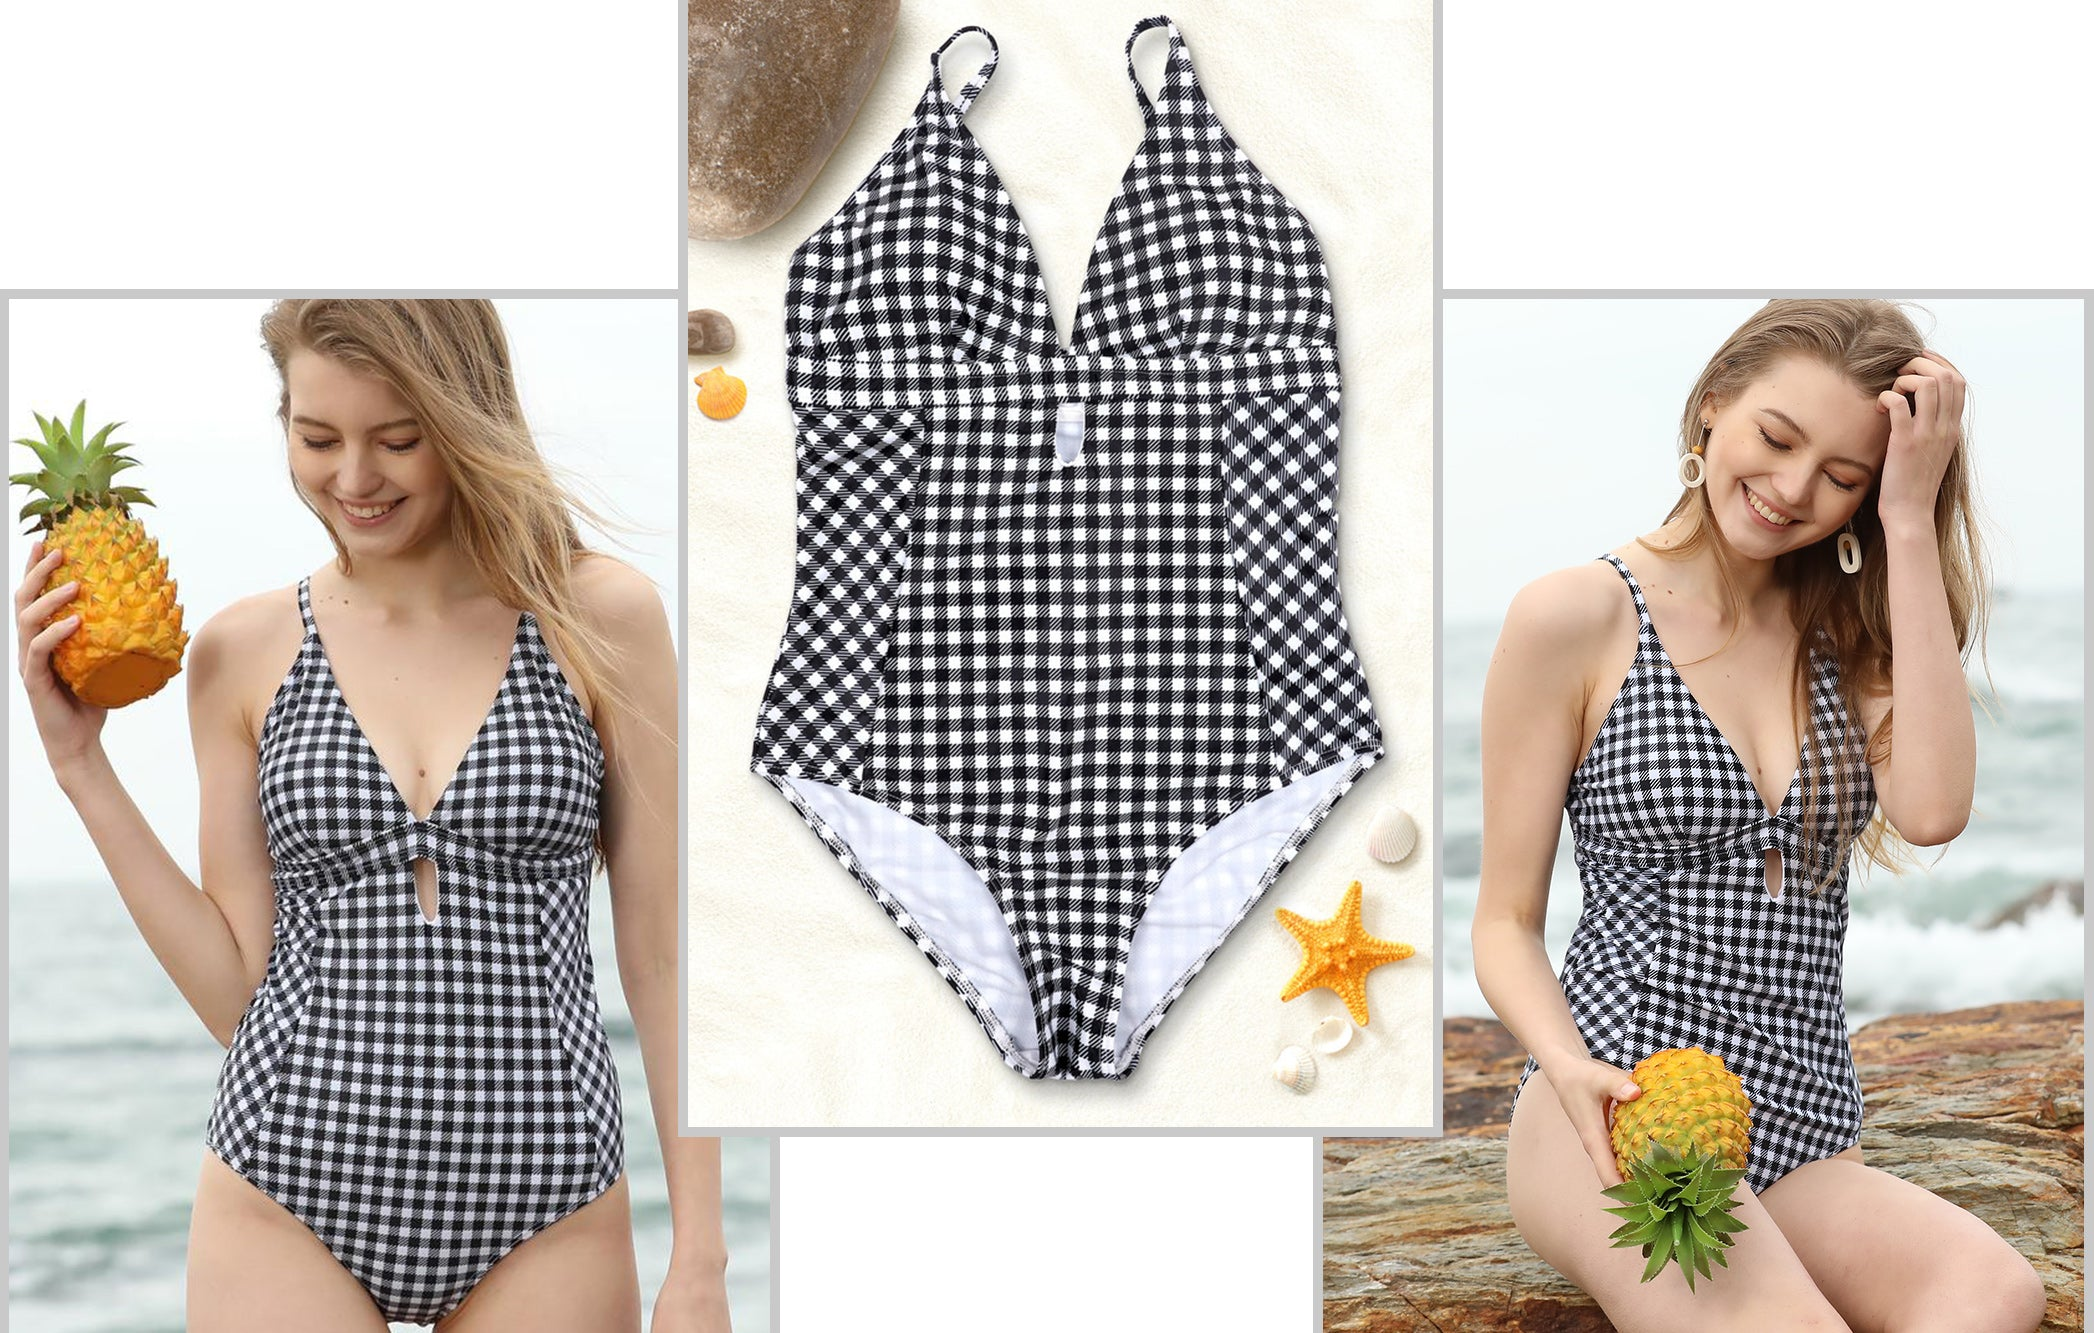 https://mycharmo.com/collections/one-piece/products/triangle-polka-dot-one-piece-swimsuit